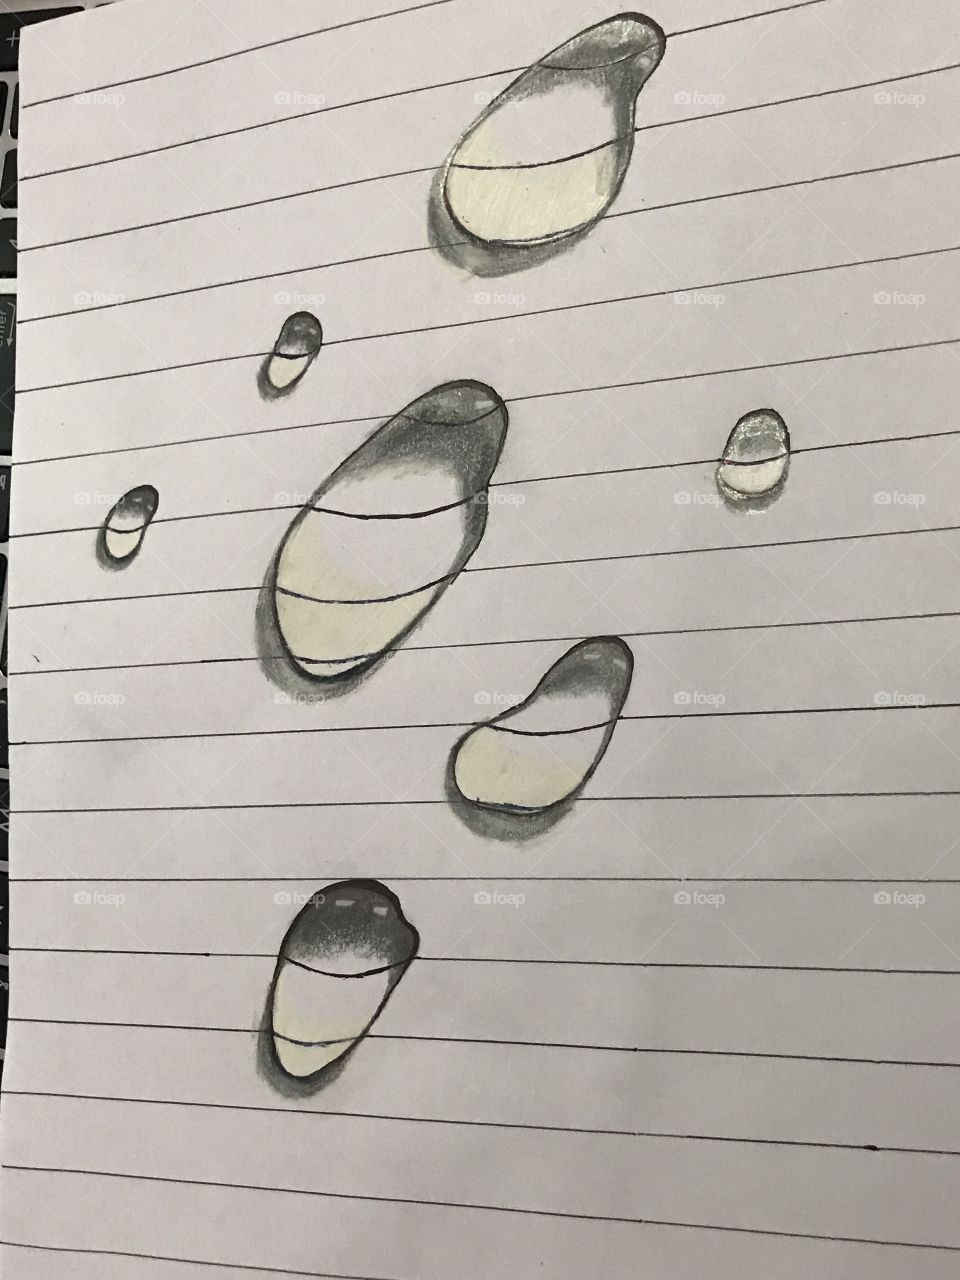 Water drop on paper by drawing